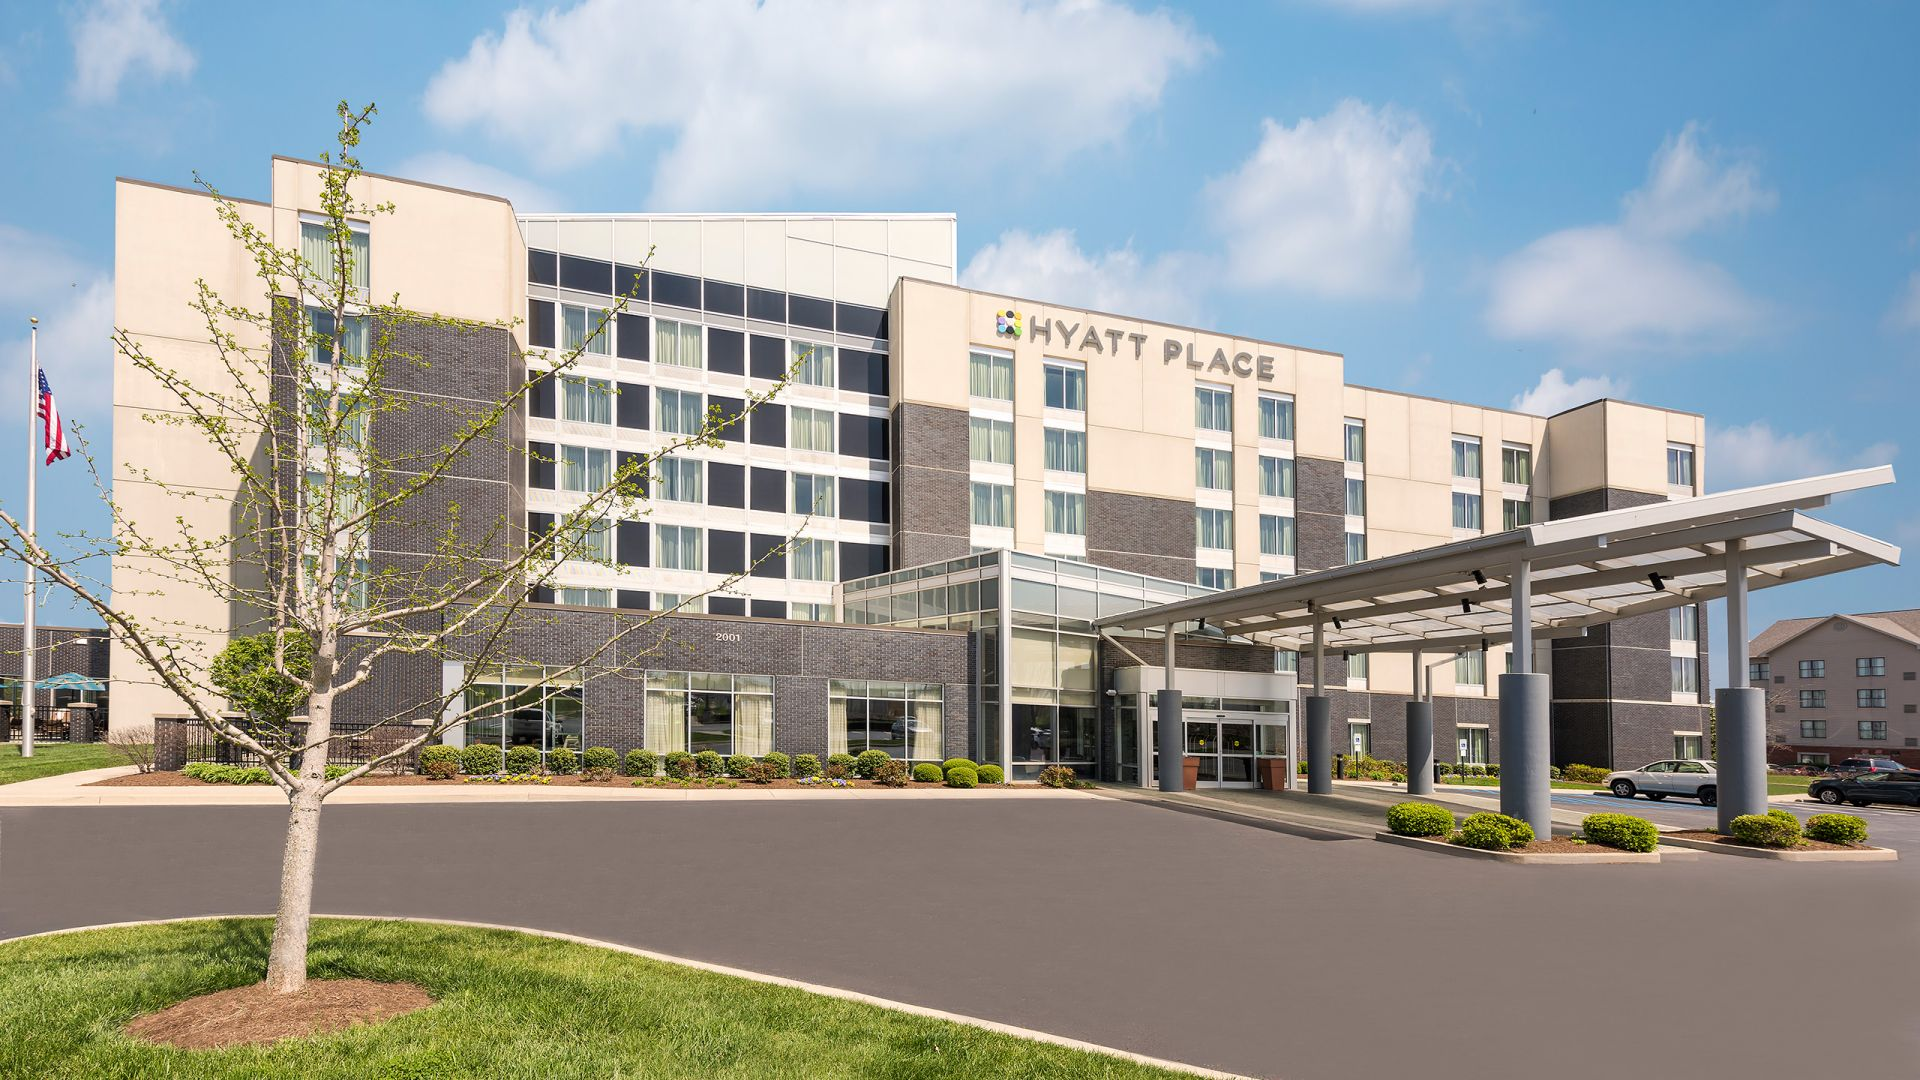 map parking transportation hyatt place lexington rh hyatt com hyatt place lexington ky reviews hyatt place lexington ky reviews